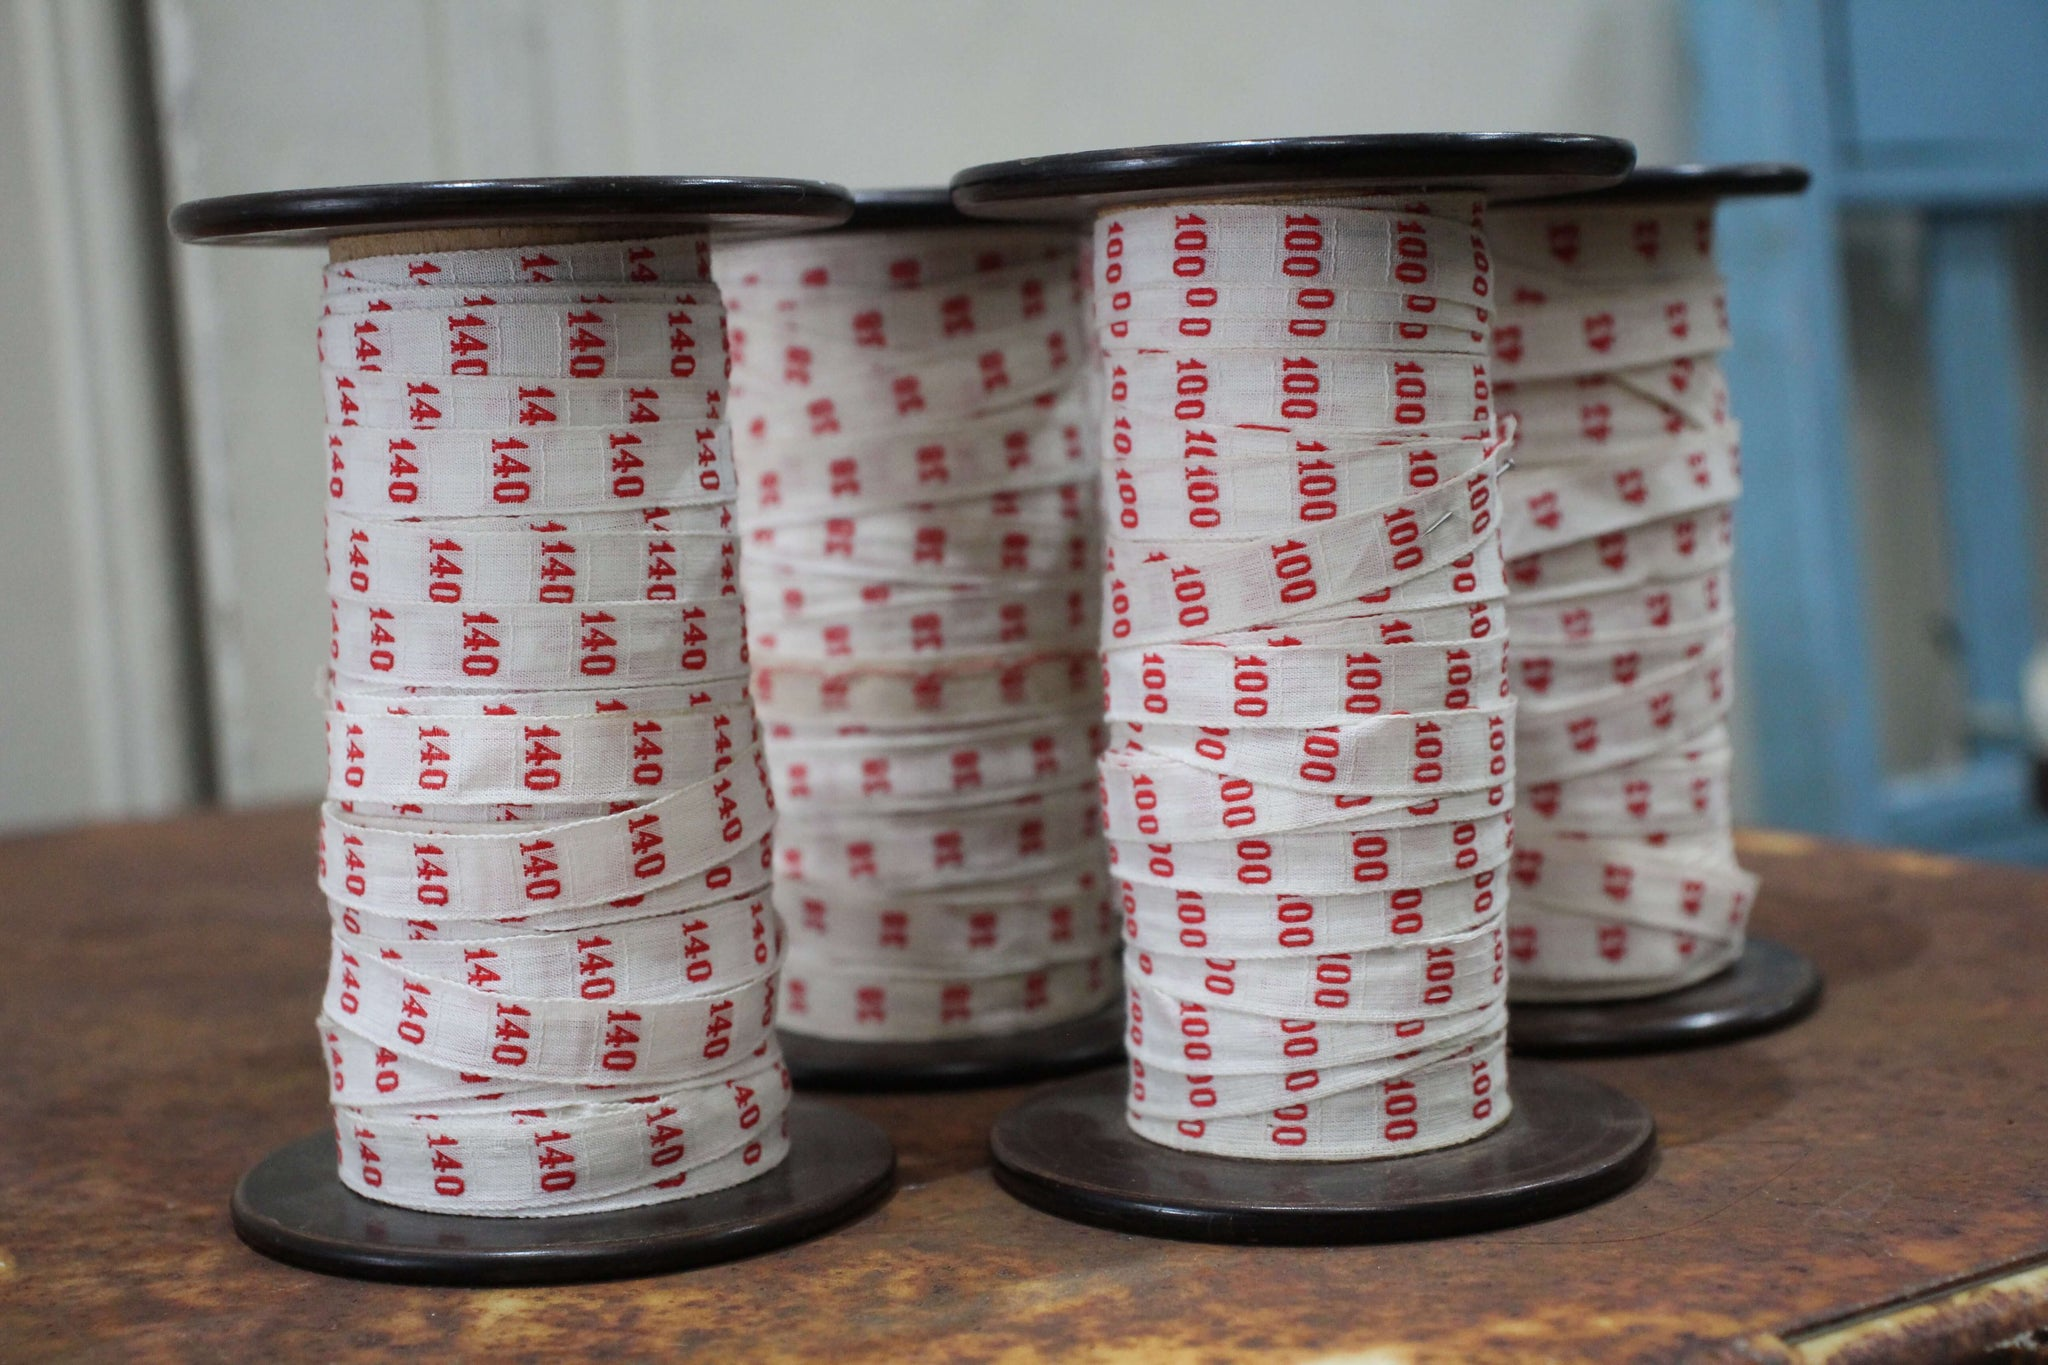 French Spools of Number Ribbon